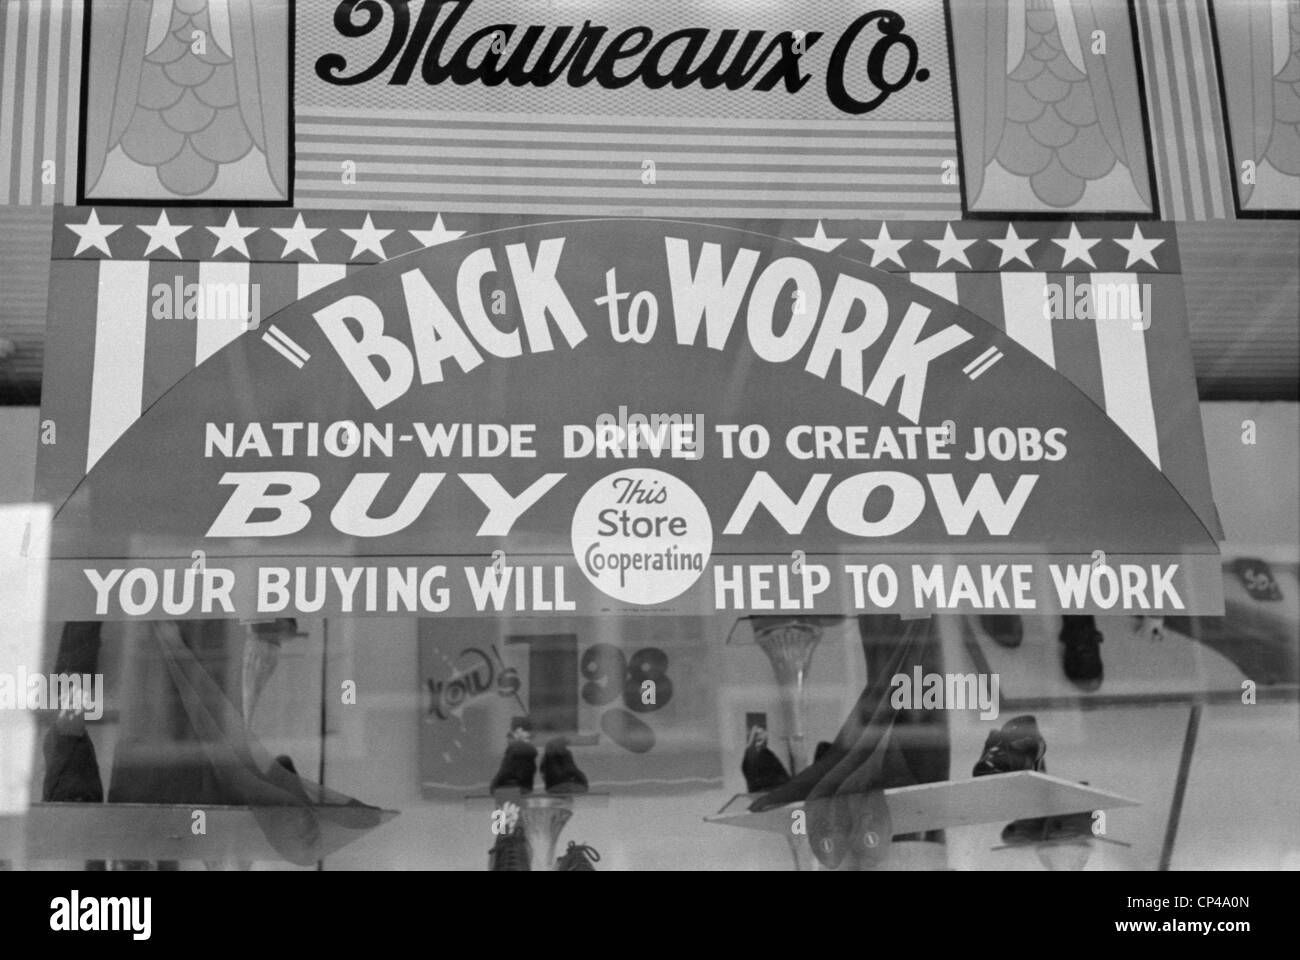 Store sign using economics theory to advertise. Sign reads 'Nation-wide drive to create jobs' and 'Your - Stock Image